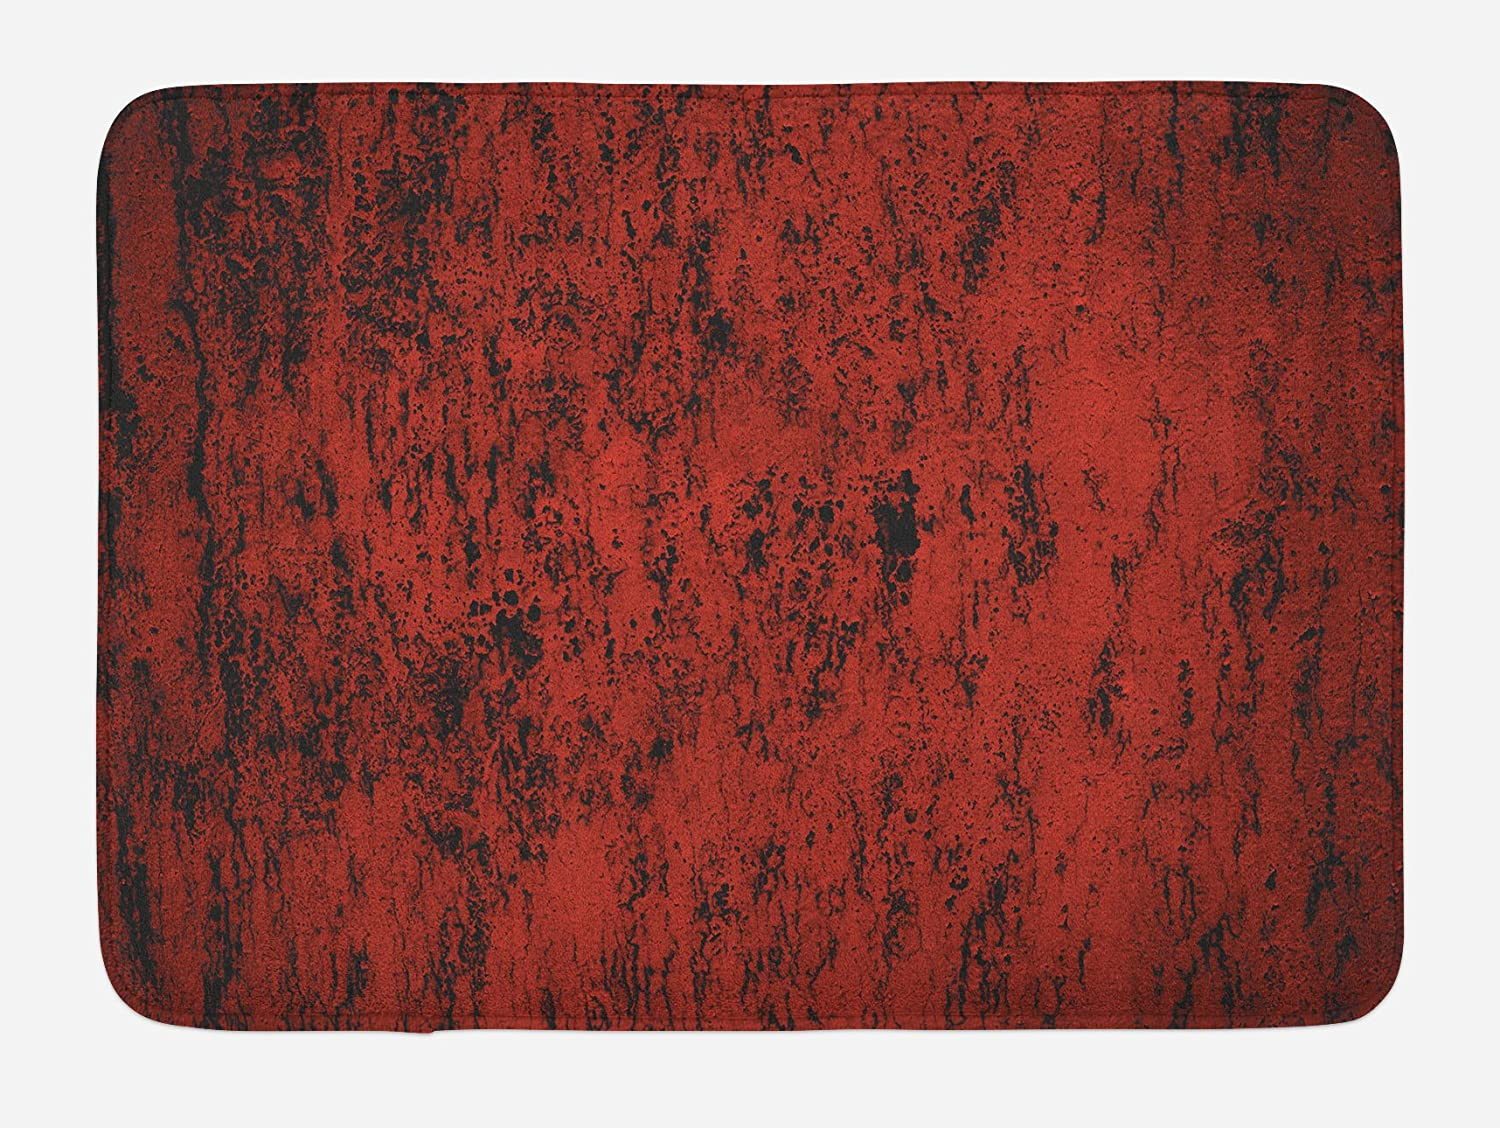 Ambesonne Red and Black Bath Mat, Abstract Pattern with Grungy Distressed Look and in Vintage Style, Plush Bathroom Decor Mat with Non Slip Backing, 29.5